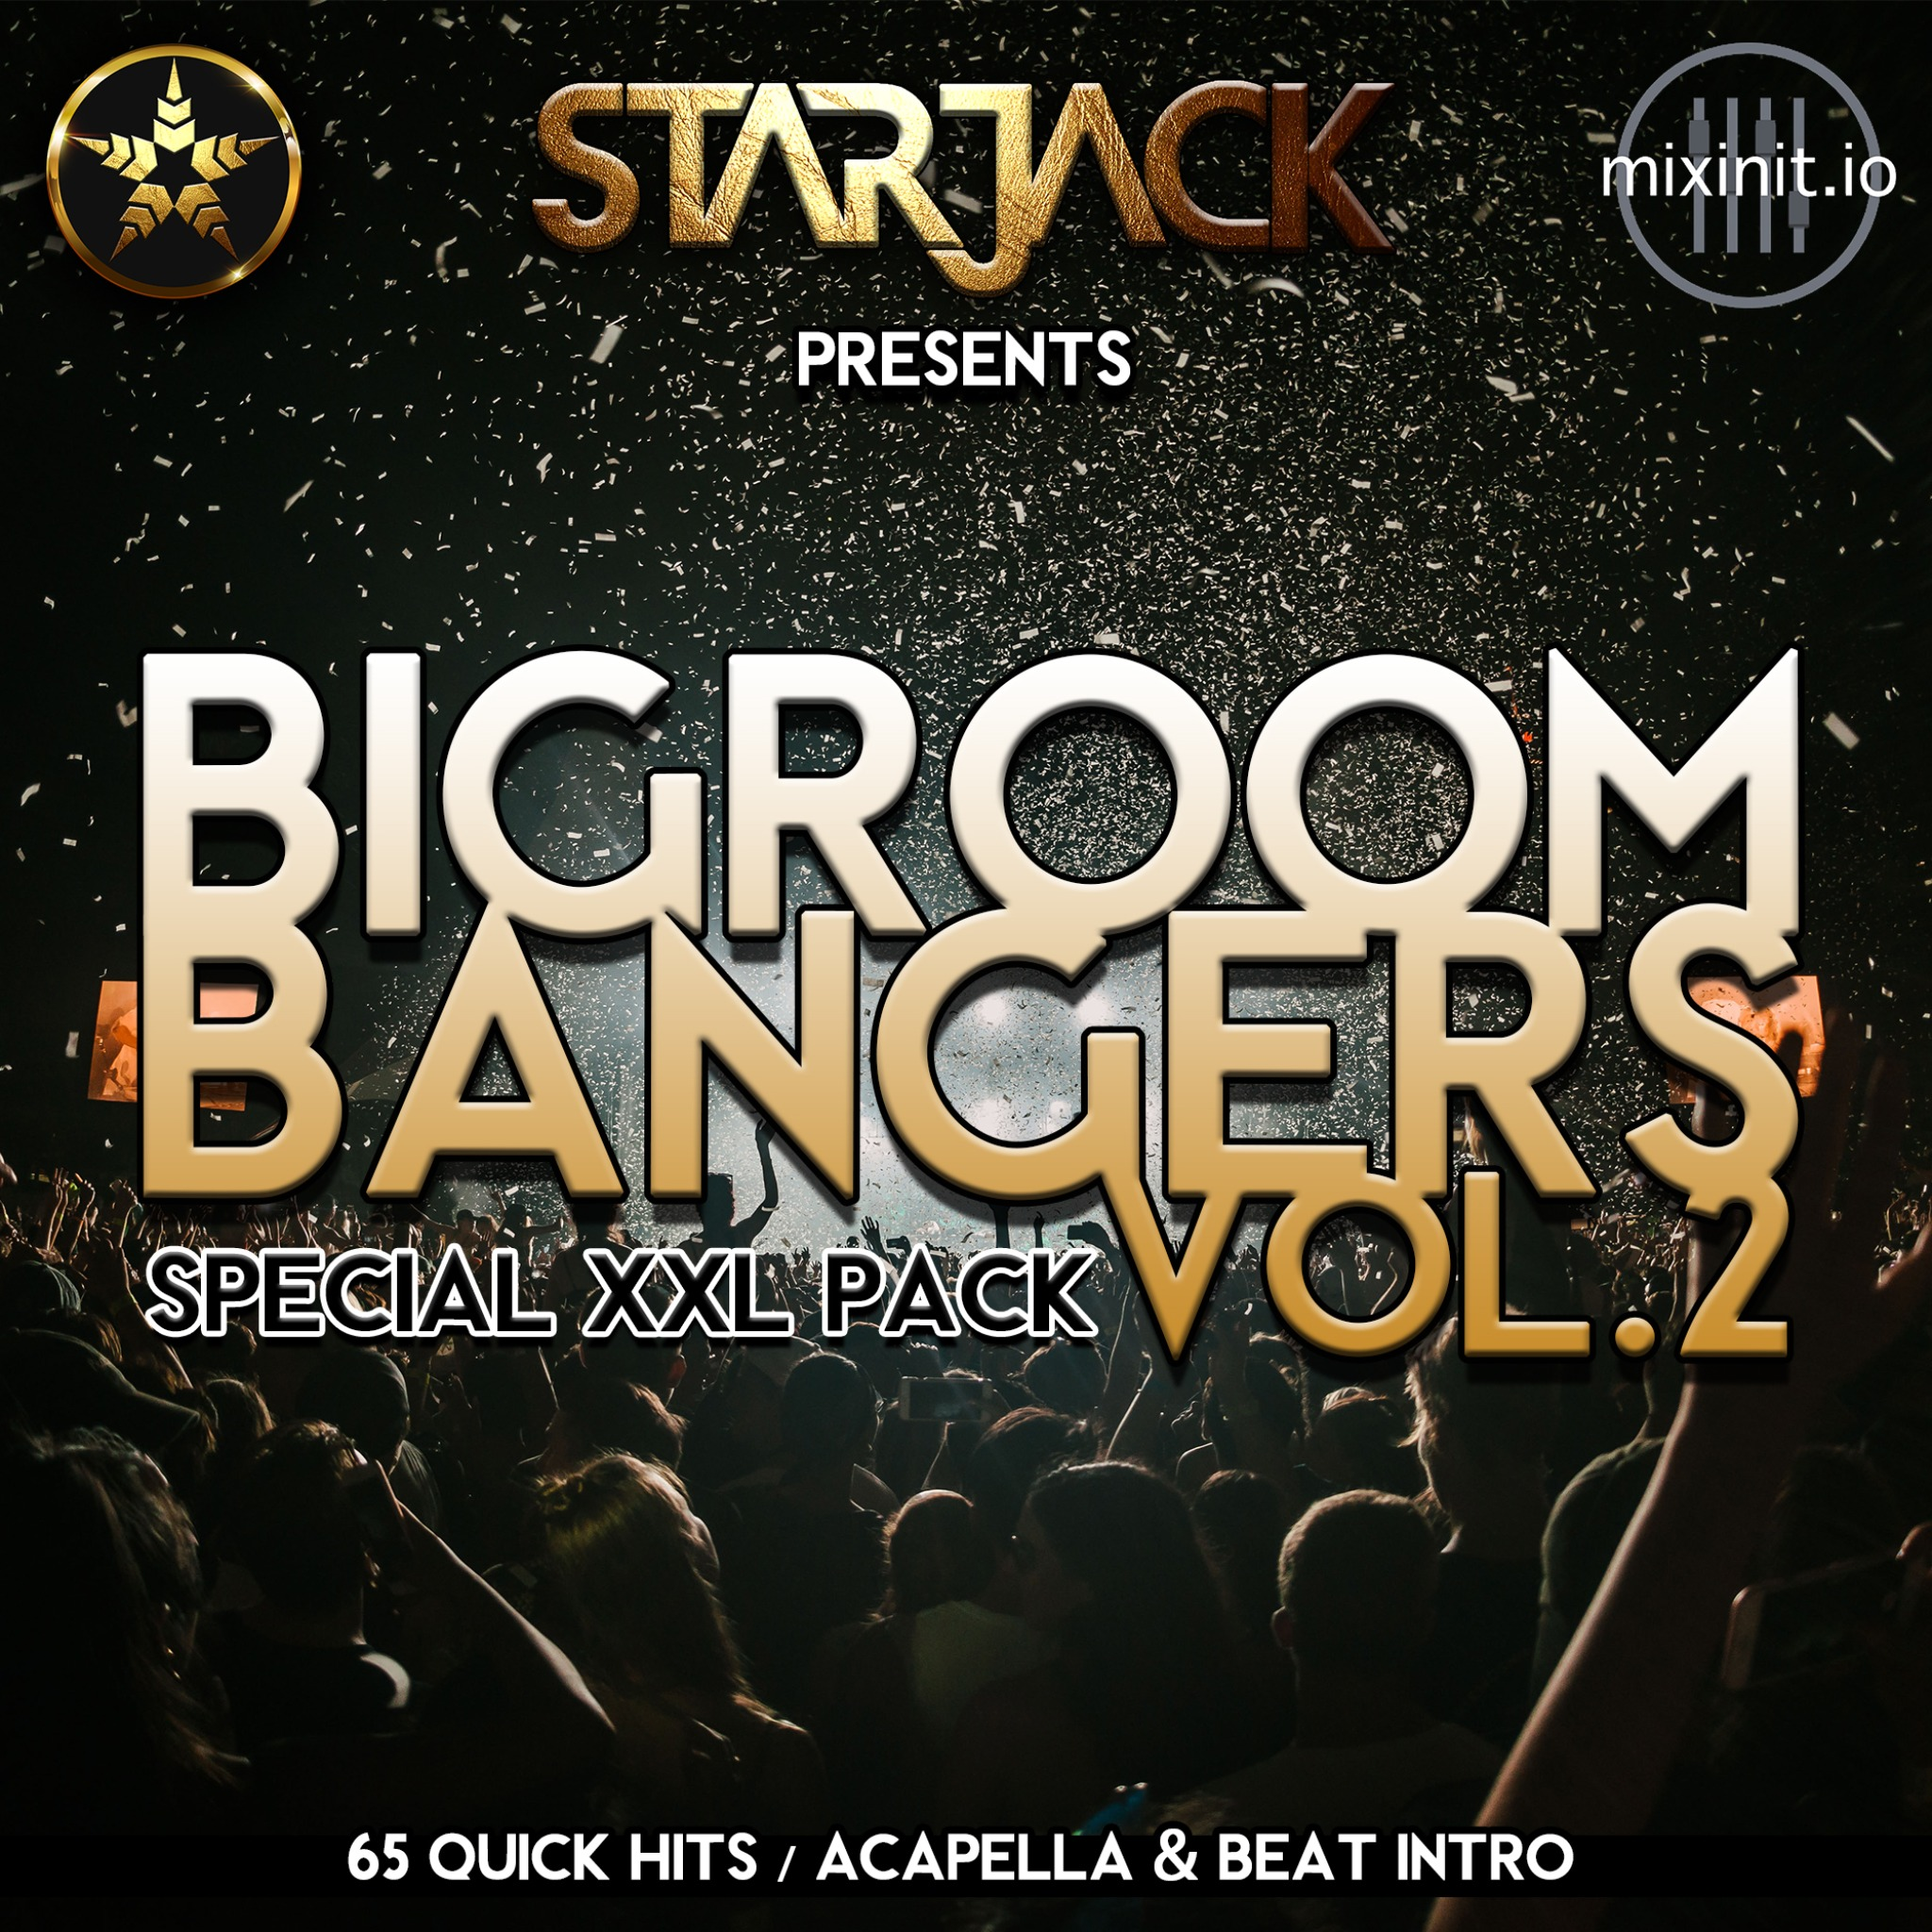 Starjack - Big Room Bangers Vol. 2 (Acap In / Quick Hits 65 Pack!)